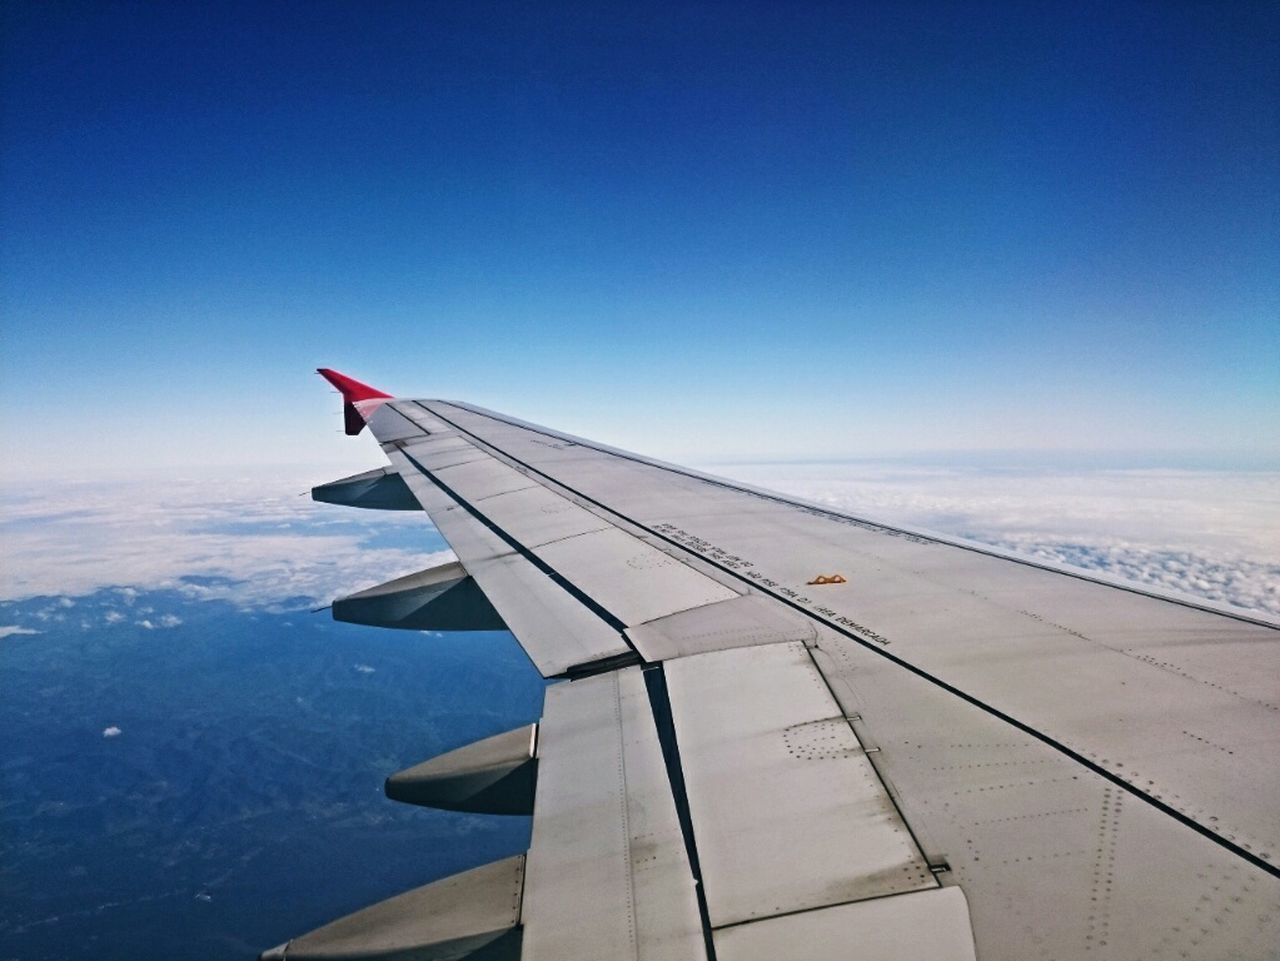 airplane, journey, transportation, airplane wing, aerial view, aircraft wing, travel, mode of transport, nature, no people, air vehicle, blue, beauty in nature, mid-air, sky, day, scenics, flying, outdoors, cloud - sky, the natural world, vehicle part, sea